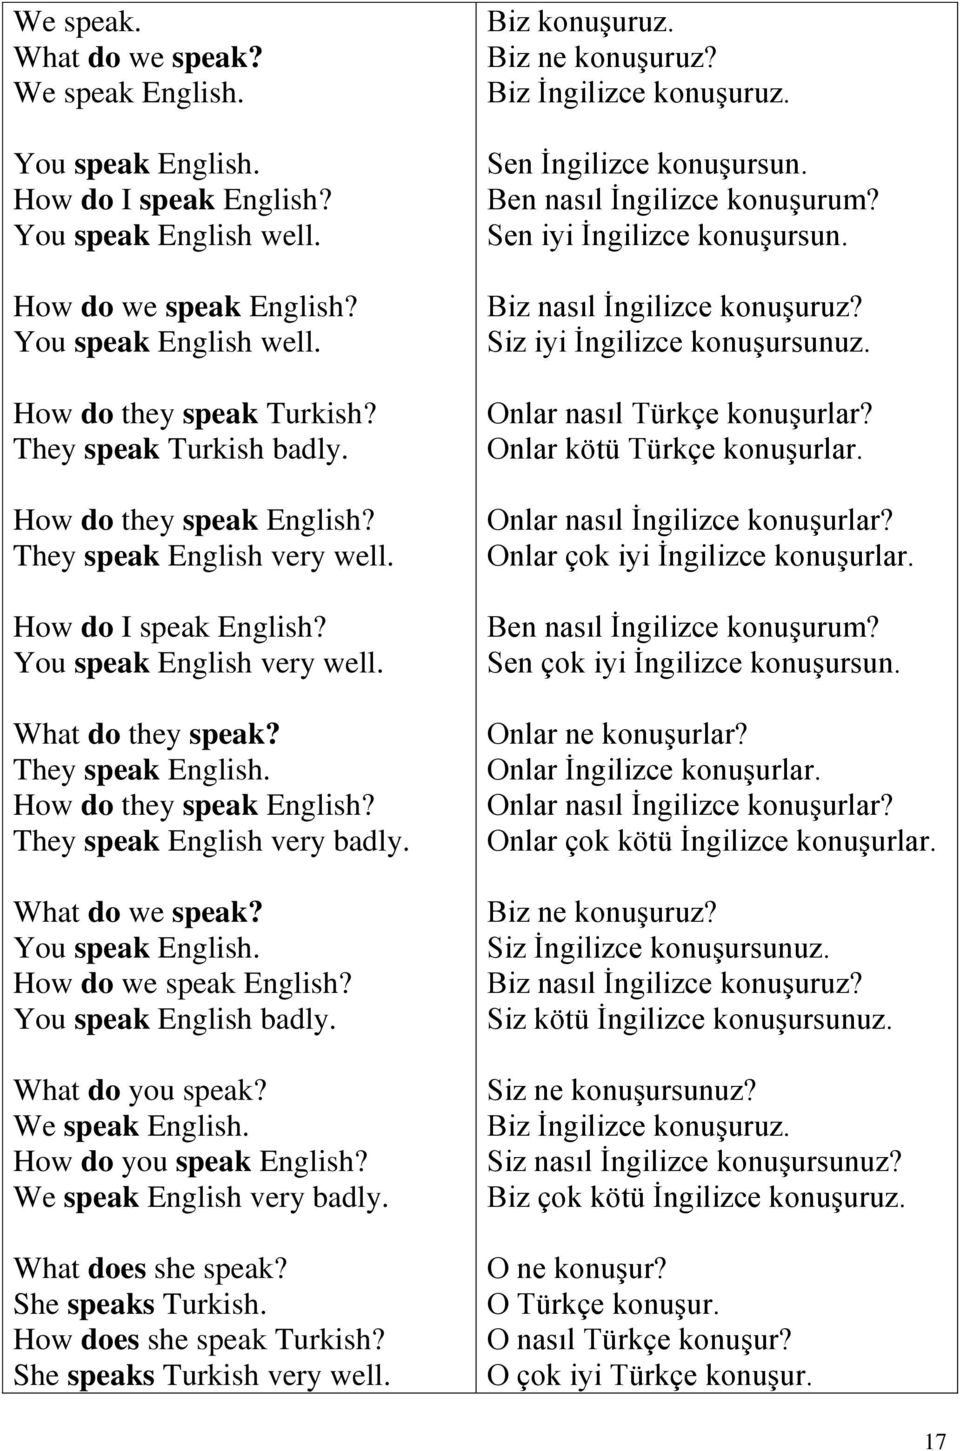 What do we speak? speak English. How do we speak English? speak English badly. What do you speak? We speak English. How do you speak English? We speak English very badly. What does she speak?